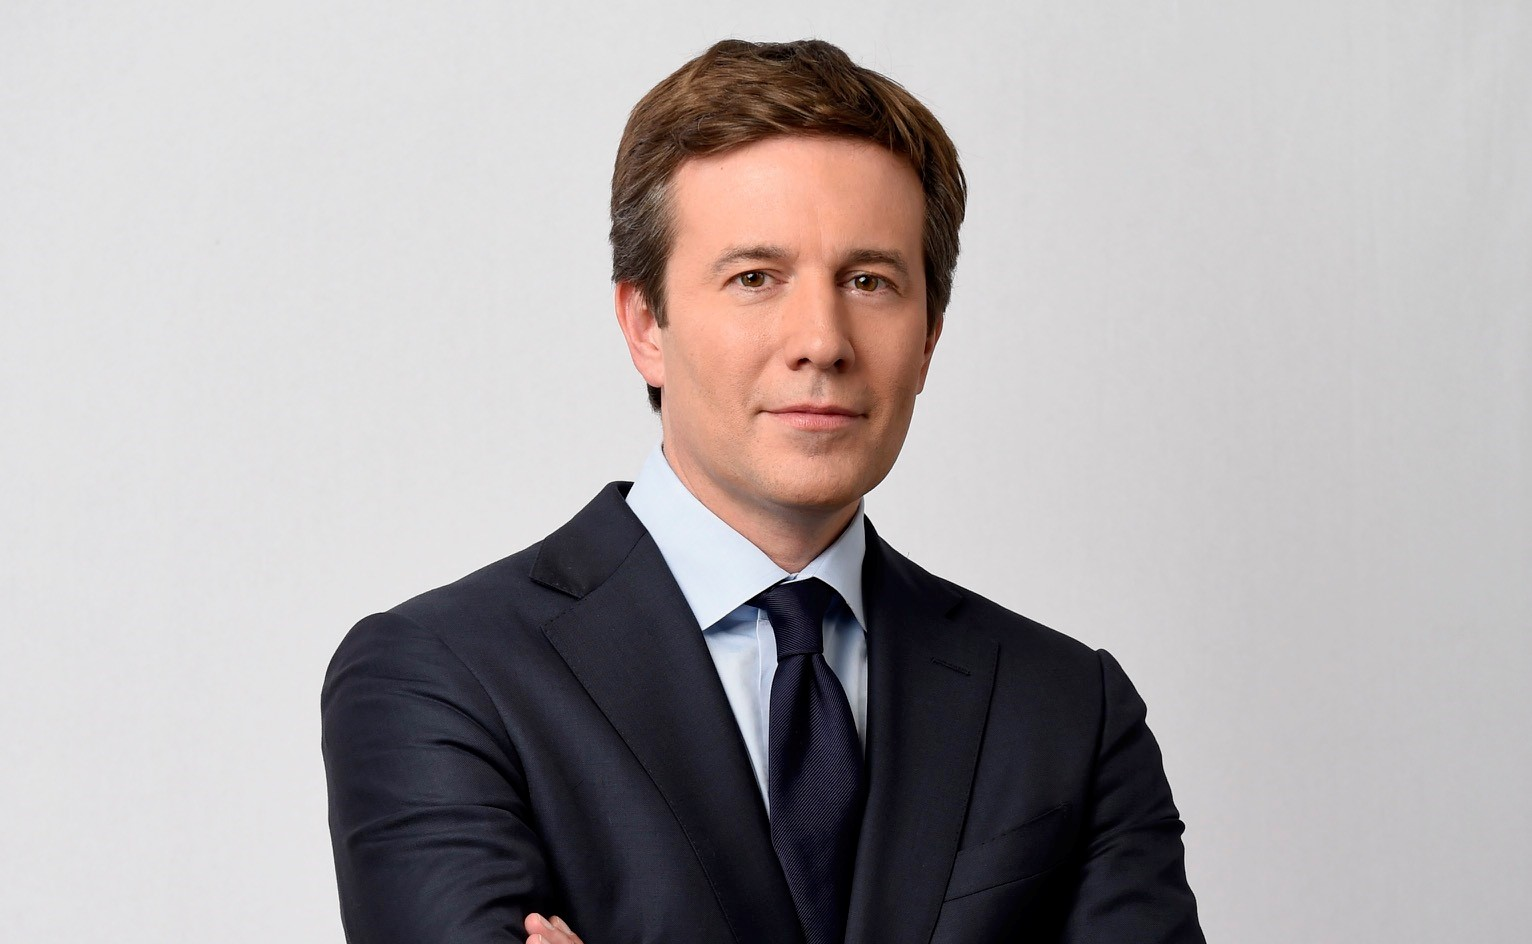 Special edition of the cbs evening news with jeff glor fro. By.